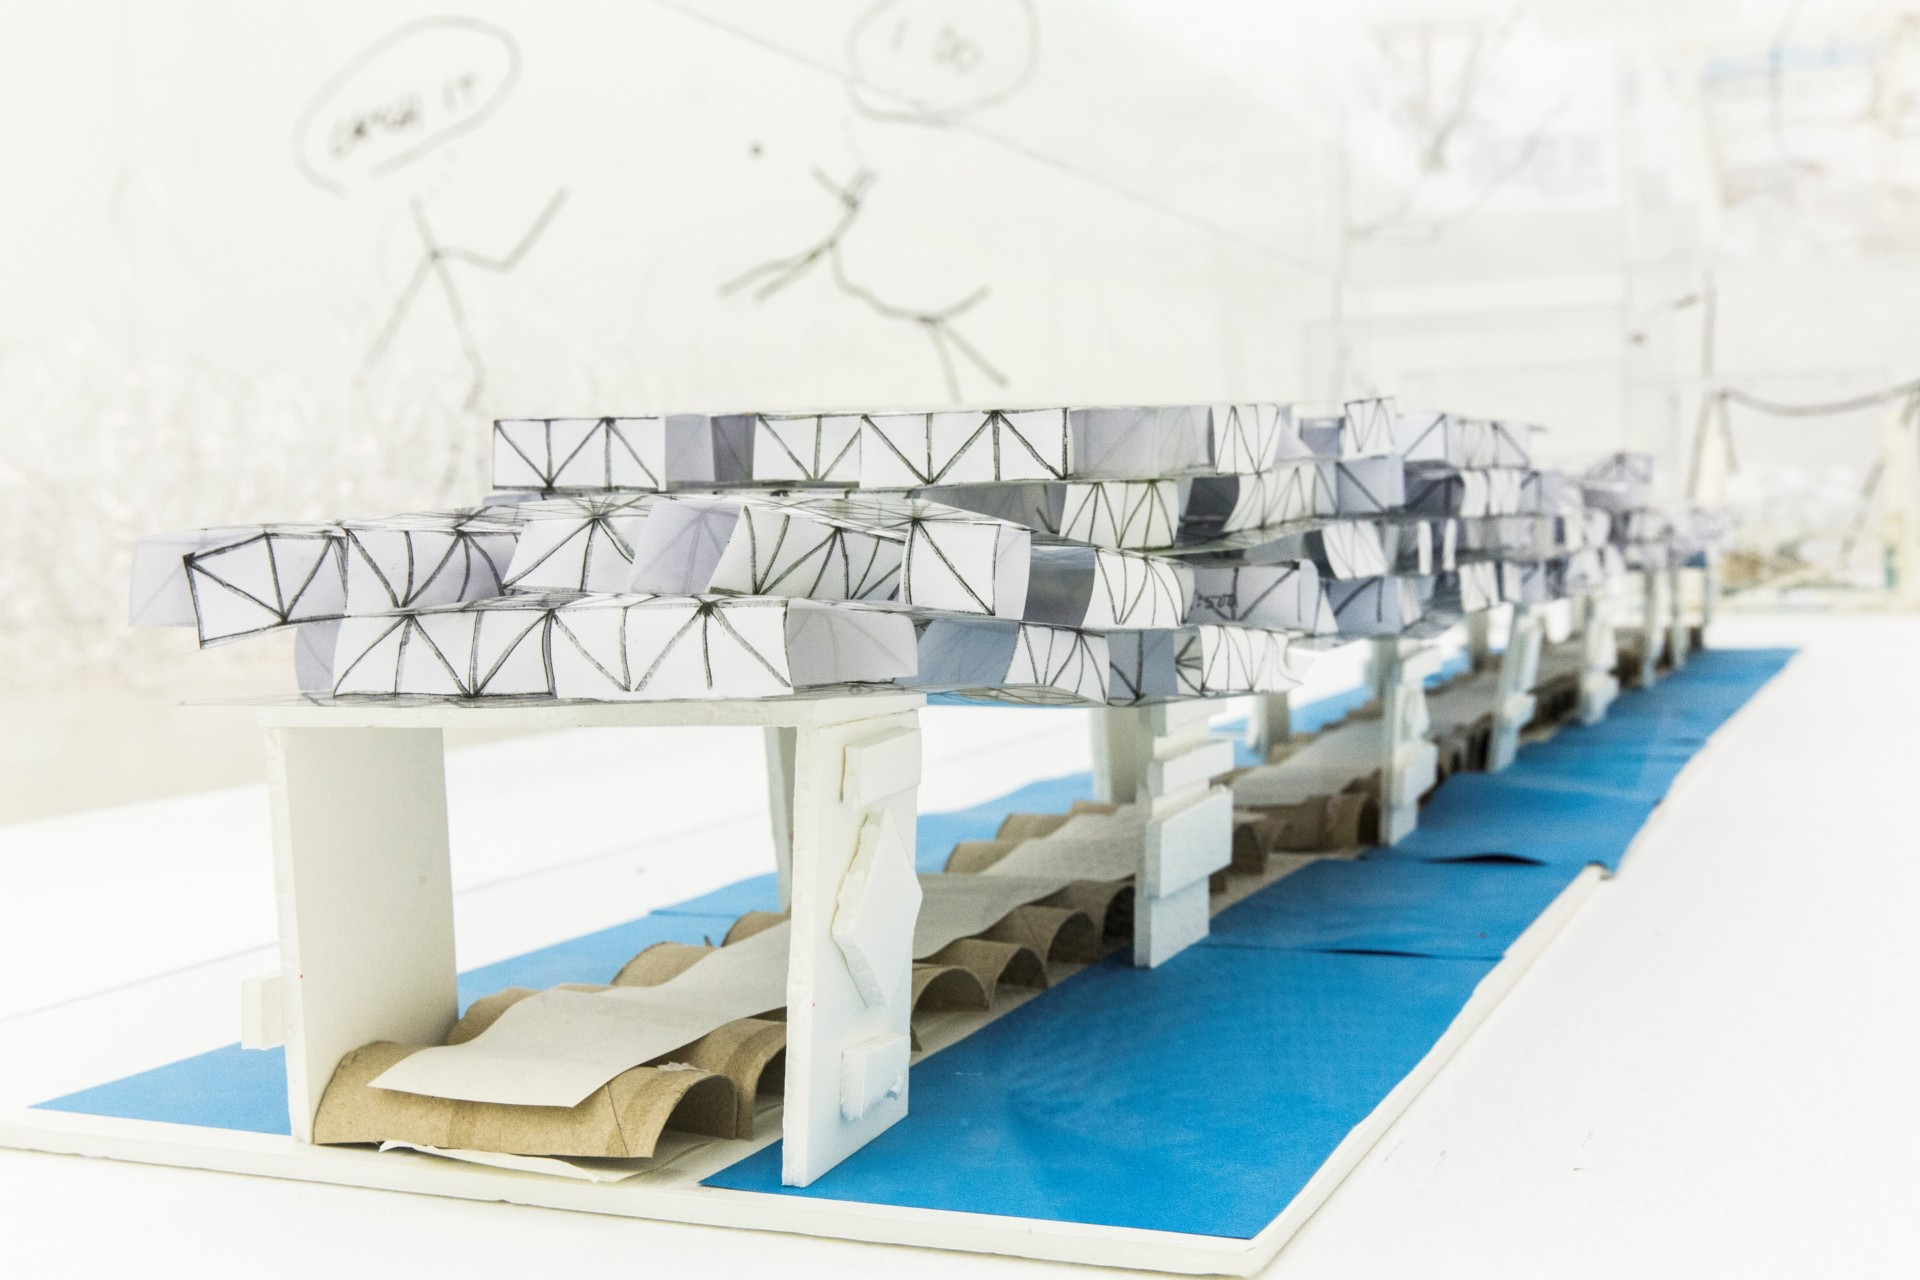 Architecture Maxxi: Yona Friedman Mobile Architecture People's